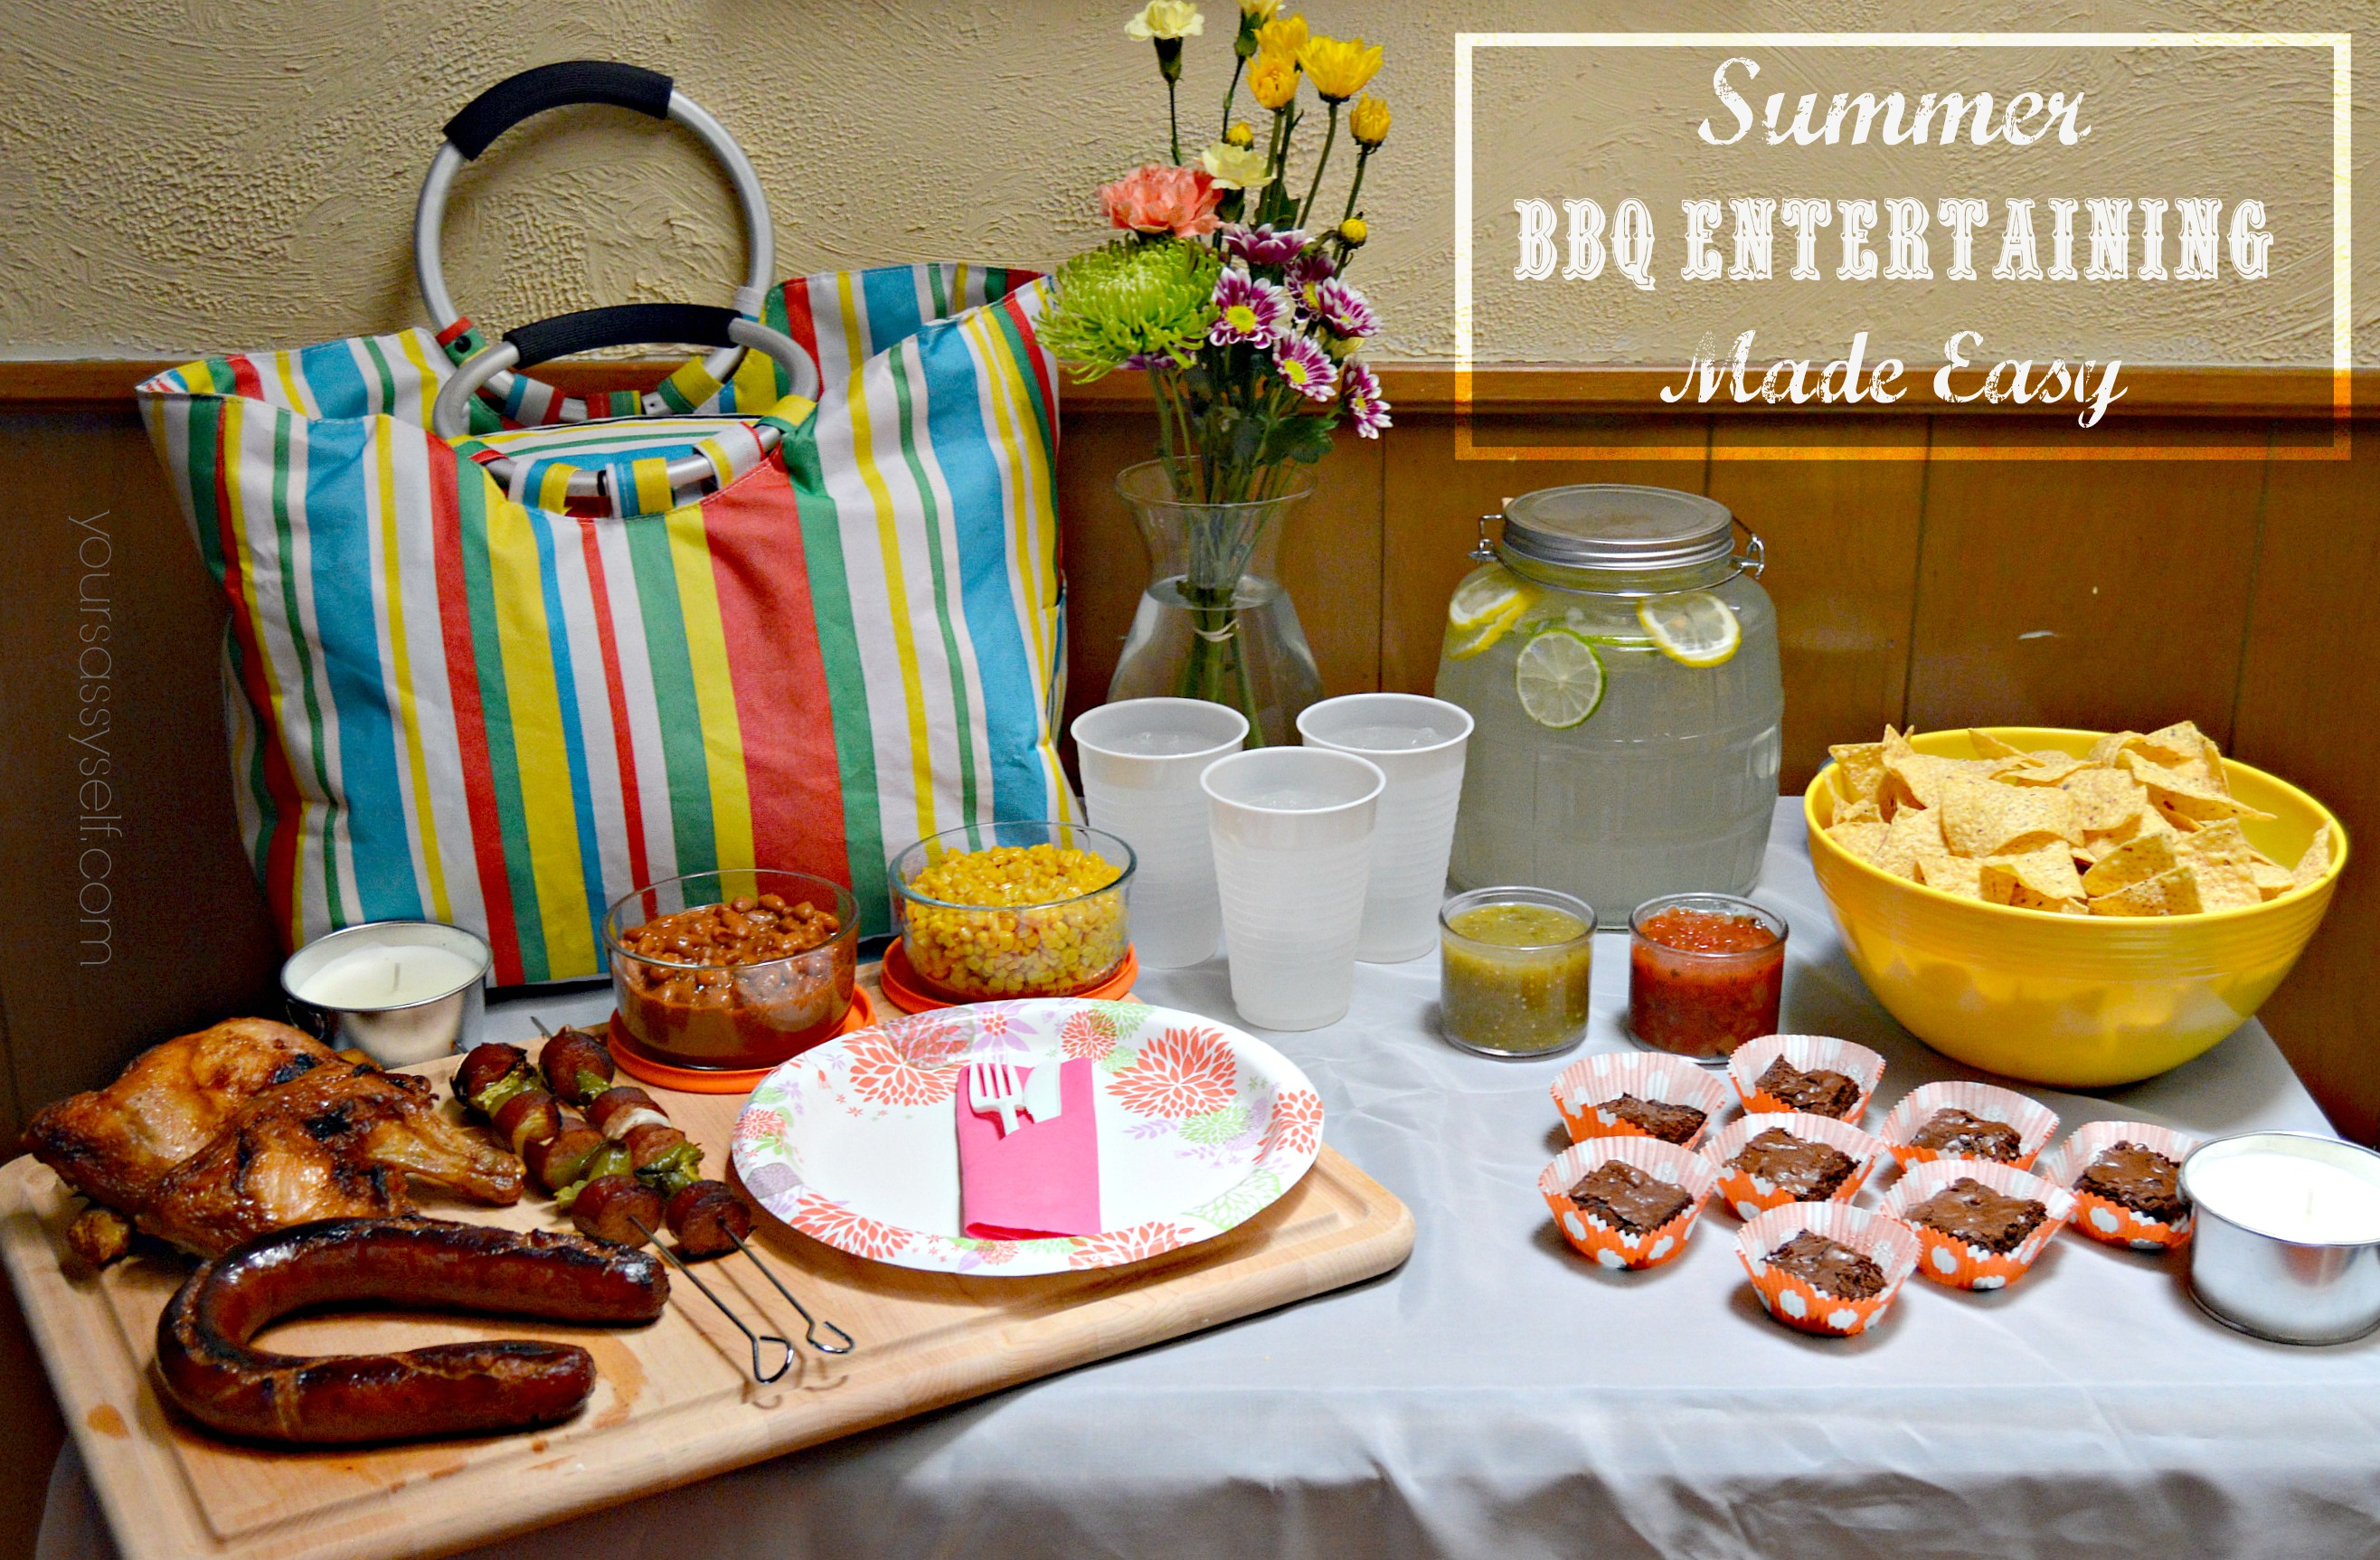 Summer BBQ Entertaining Made Easy